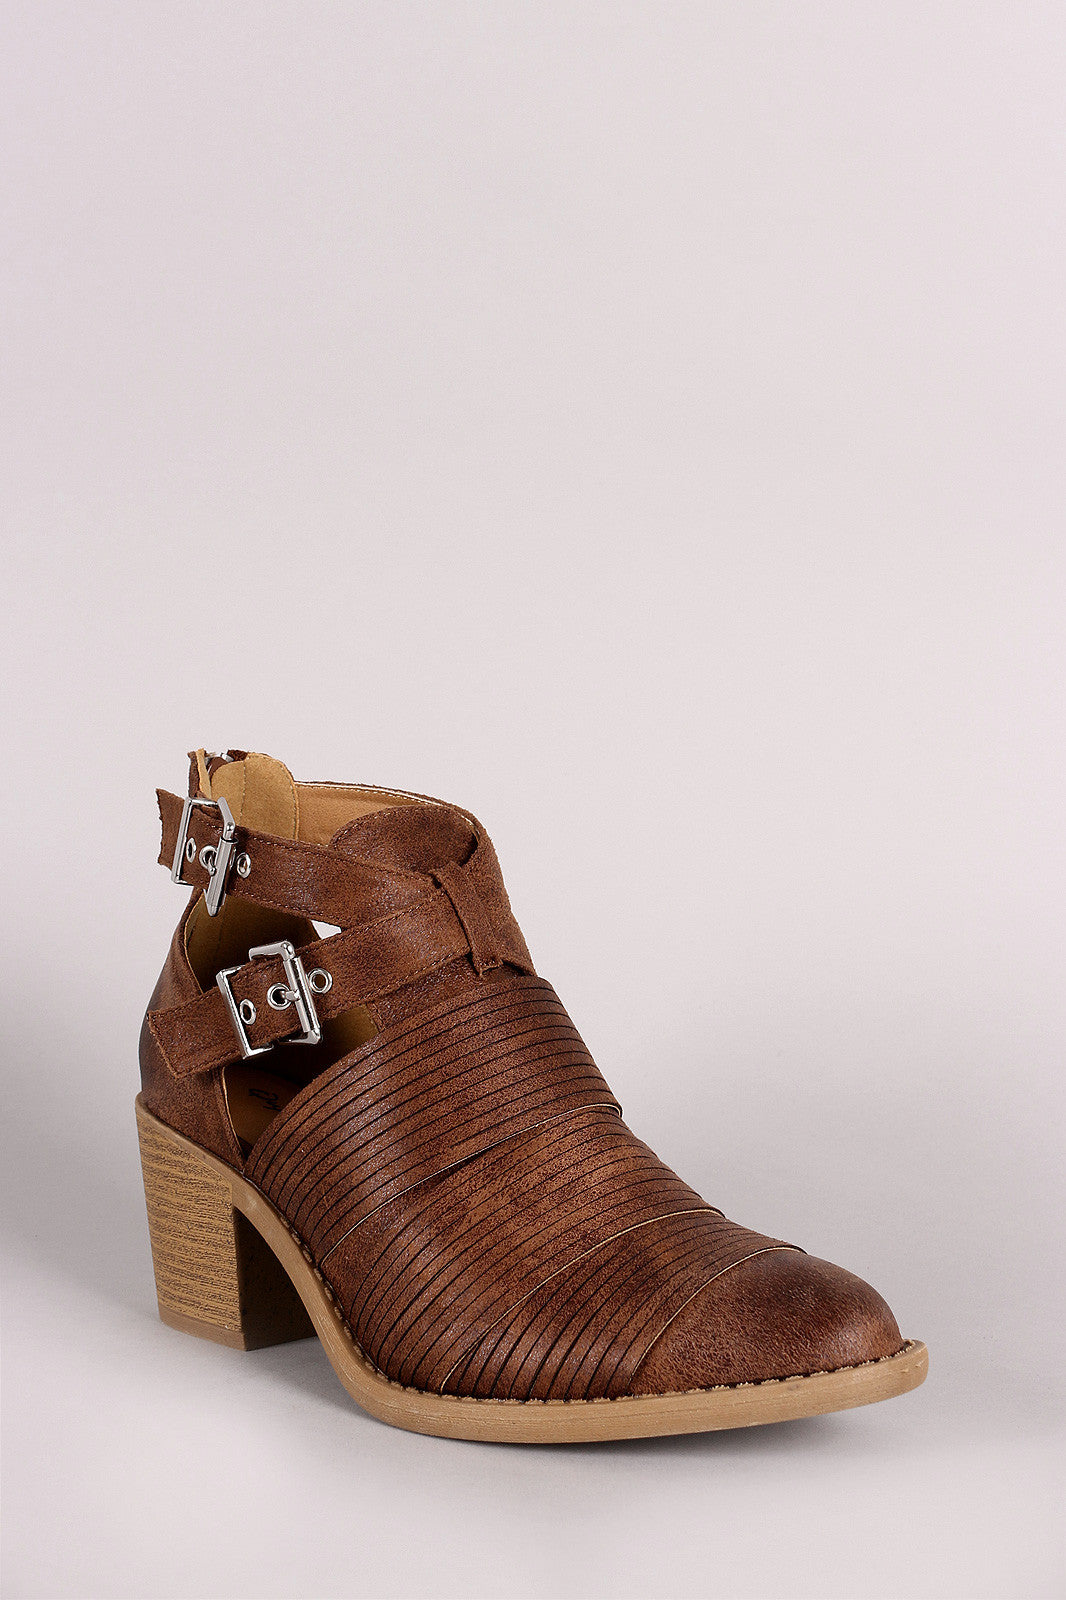 Qupid Slashed Crisscross Buckled Strap Chunky Heeled Ankle Boots - Thick 'N' Curvy Shop - 11